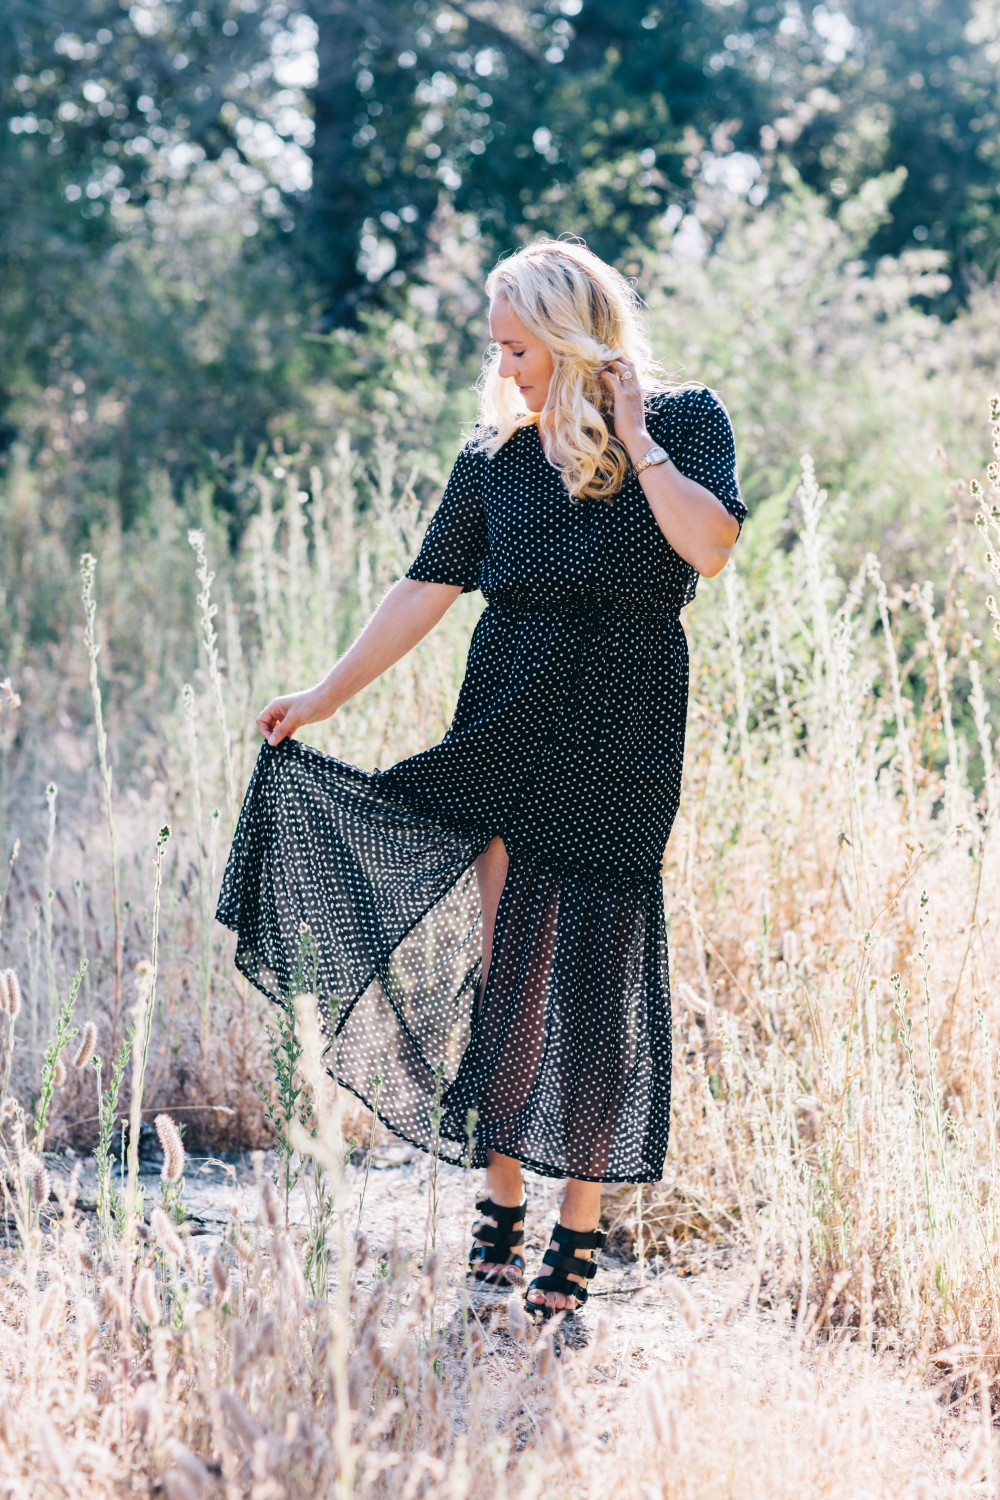 Black and White Polka Dot Maxi Dress-Who What Wear for Target-Target Maxi Dress-Polka Dot Dress-Outfit Inspiration-Bay Area Fashion Blogger-Have Need Want 2